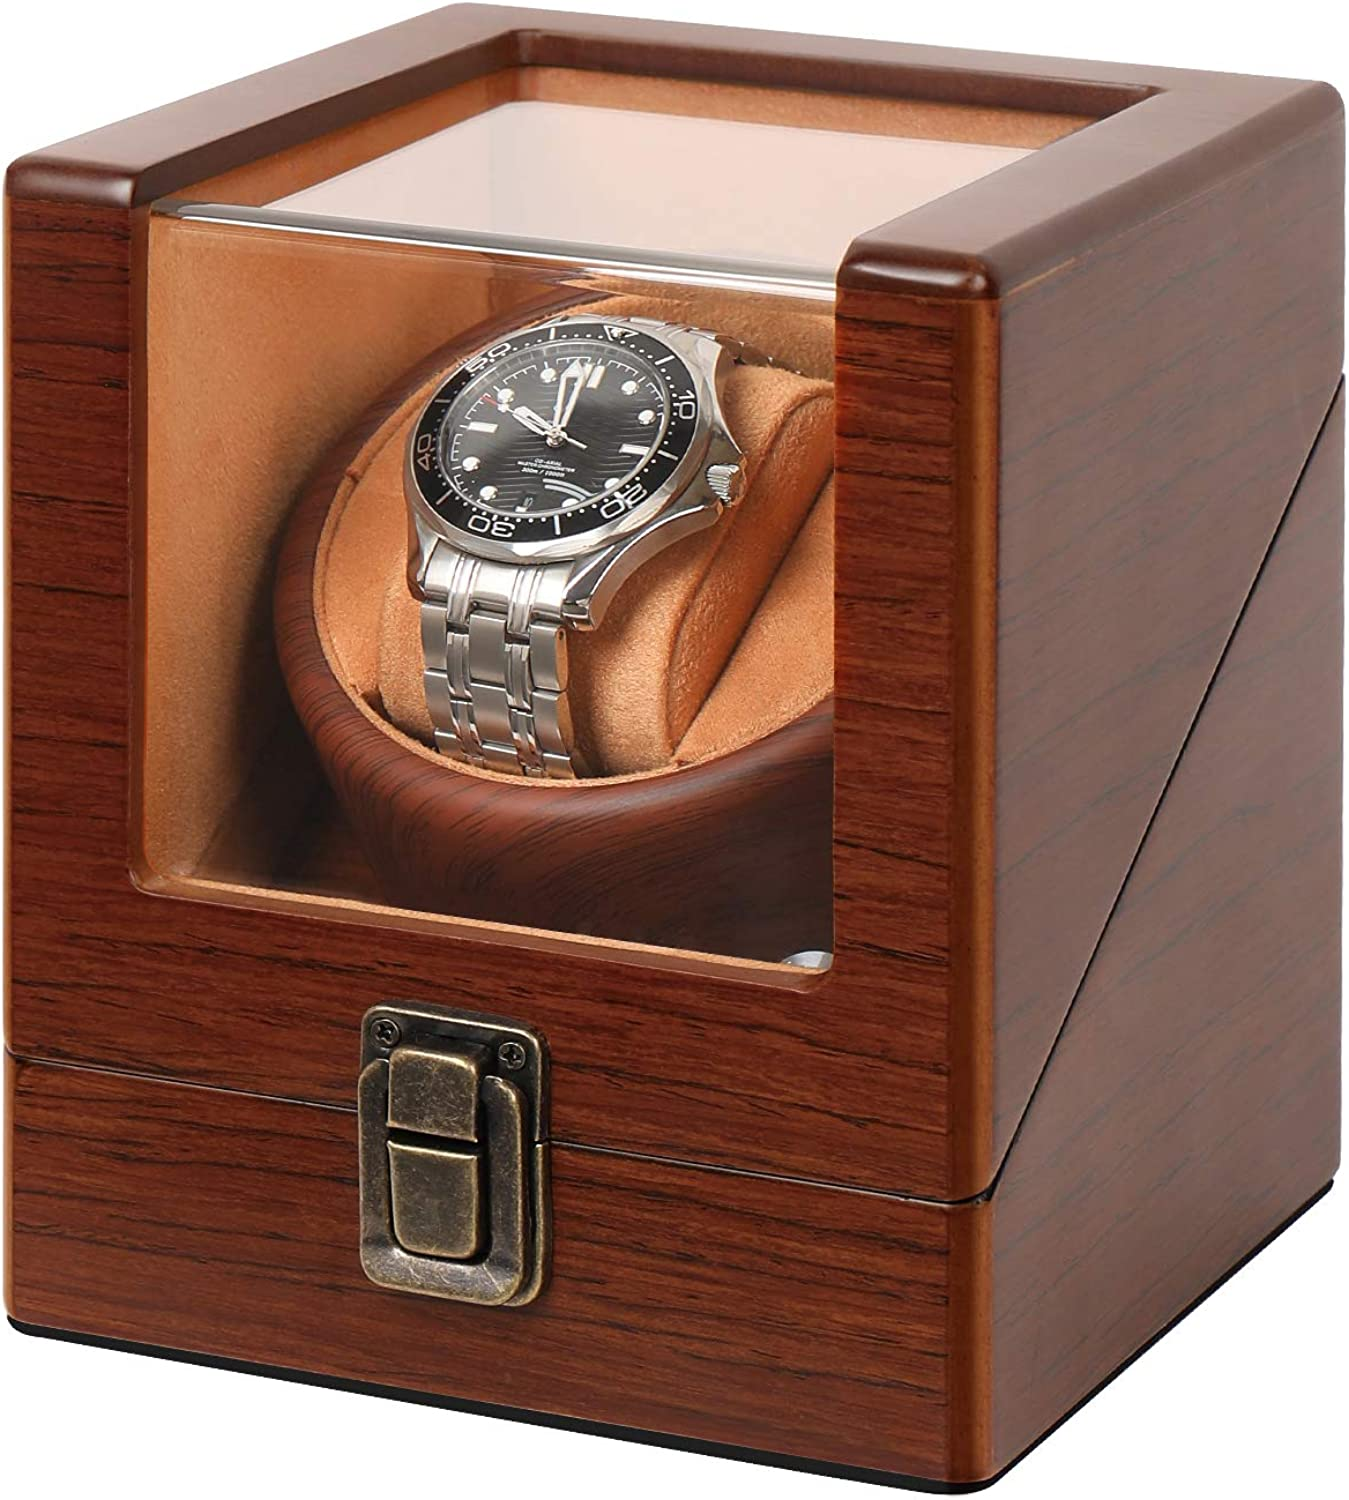 Wooden Watch Winder for Automatic Watches with Lock Super Quiet Motor Watch Winder Box Single: Sen Moer: Watches